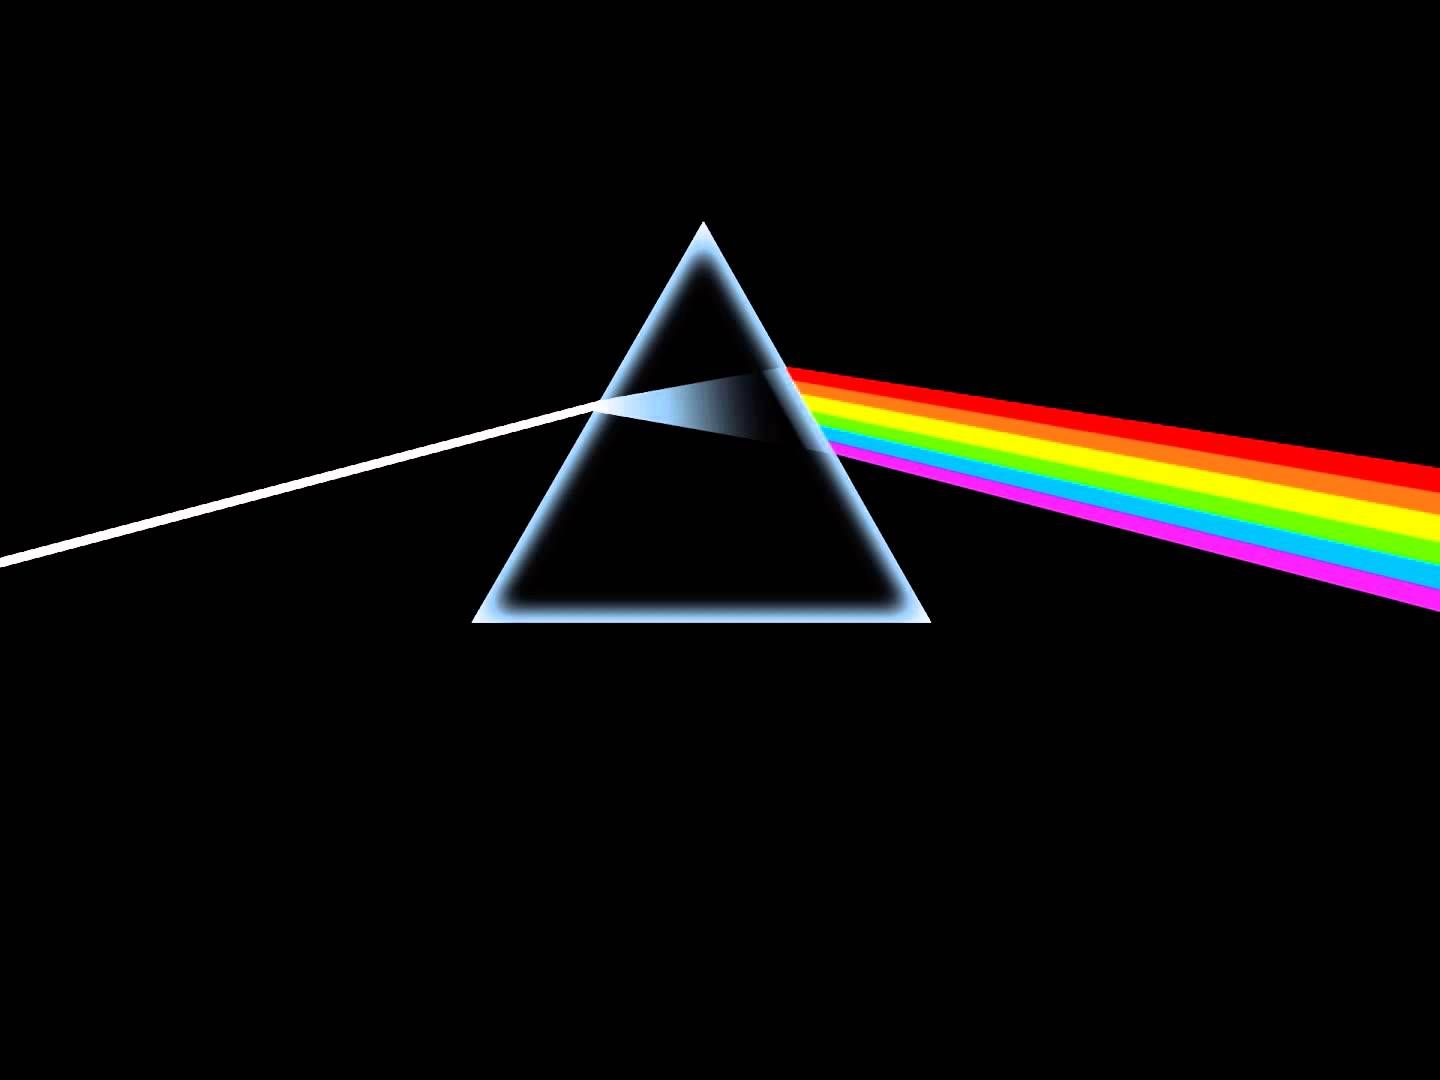 Pink Floyd Another Brick In The Wall 2 Lyrics Brick In The Wall